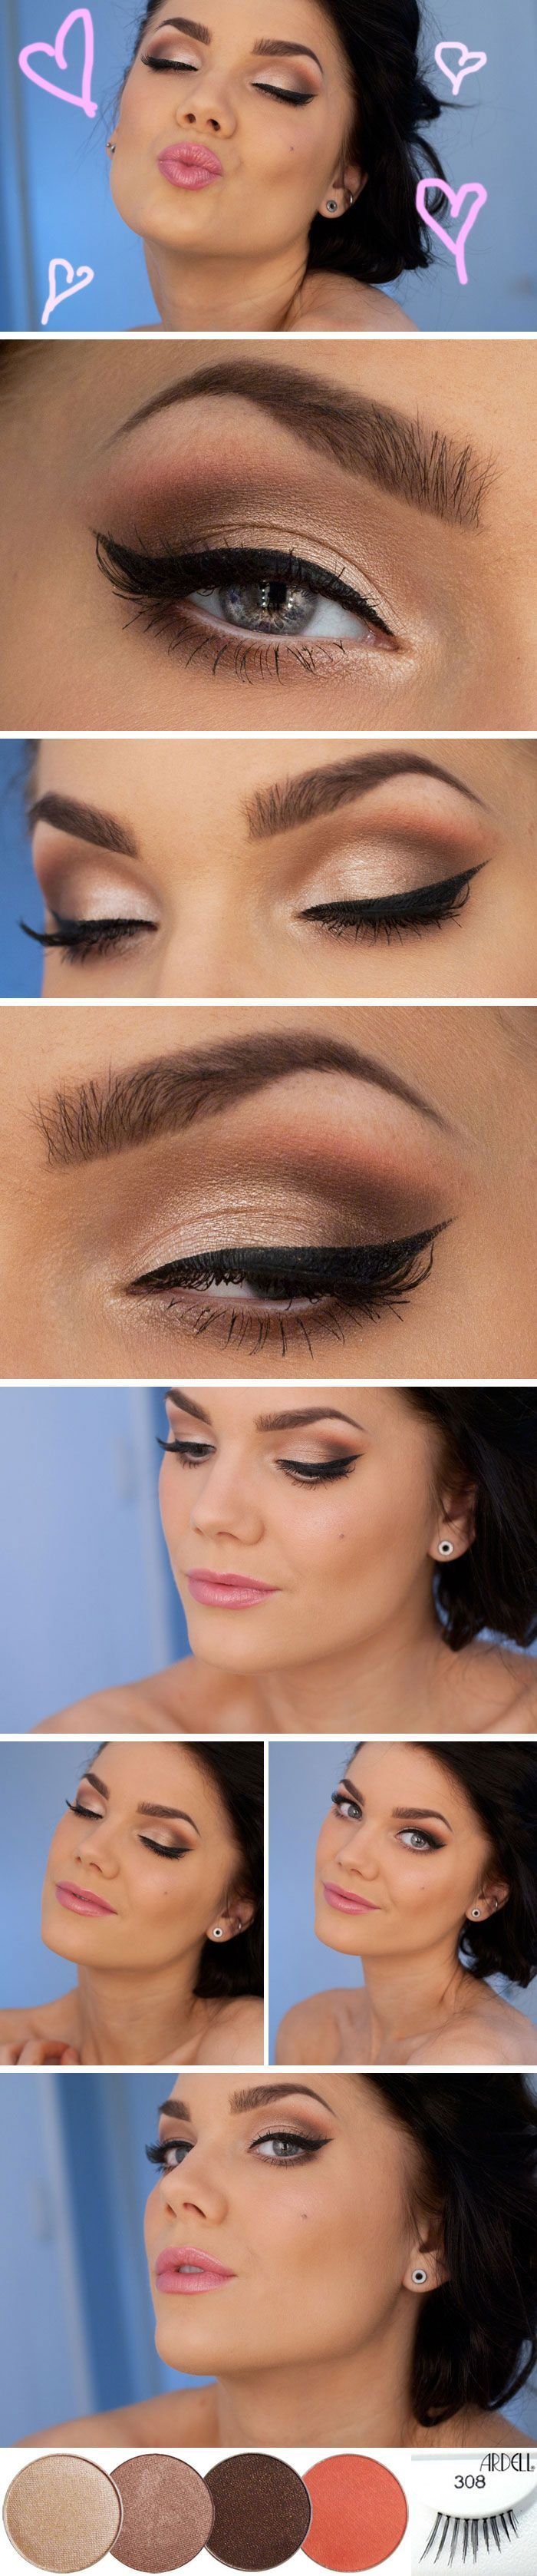 DIY :: Valentine's Day Makeup by Linda Hallberg :: CLICK for product list...using MakeupGeek shadows (4, shown) & some eyeprimer, eyeliner & Ardell 308 lashes (shown) which are just the halfers. Very pretty! | #nyheter24: